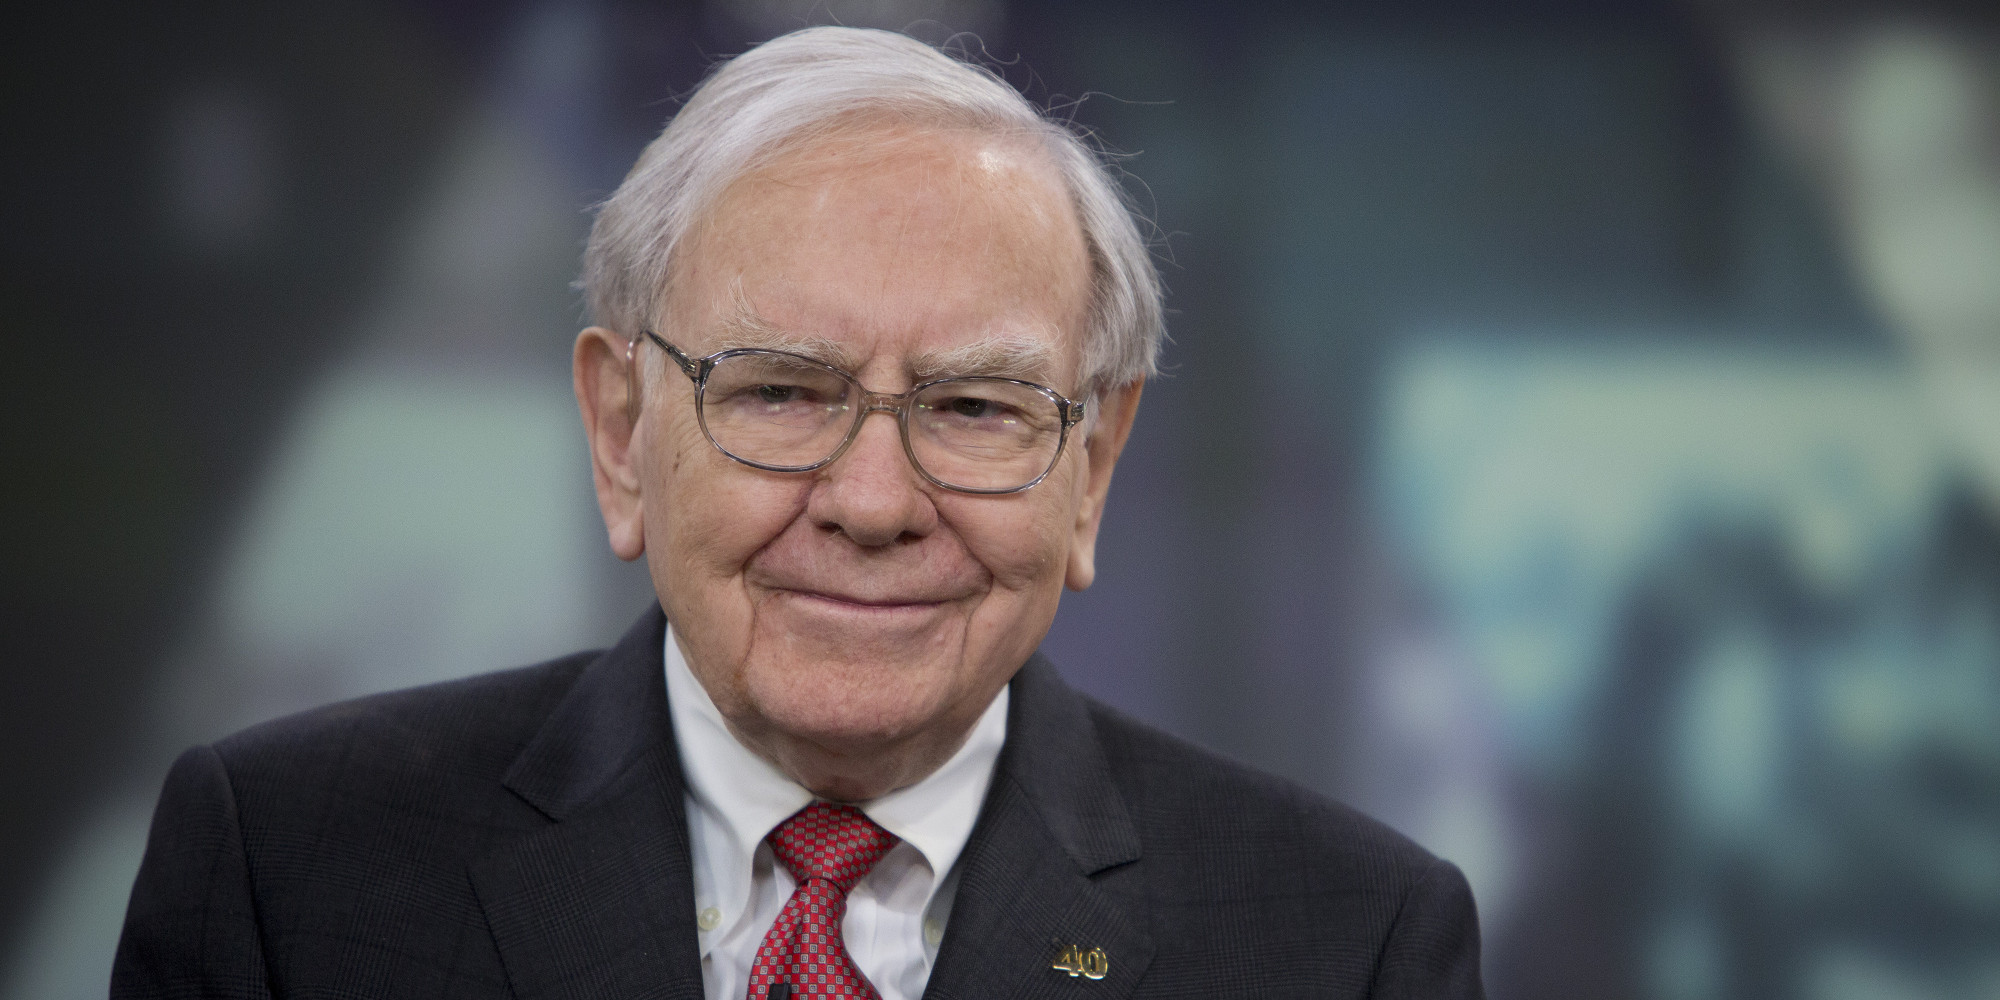 The one thing Warren Buffett suggests we all invest in.